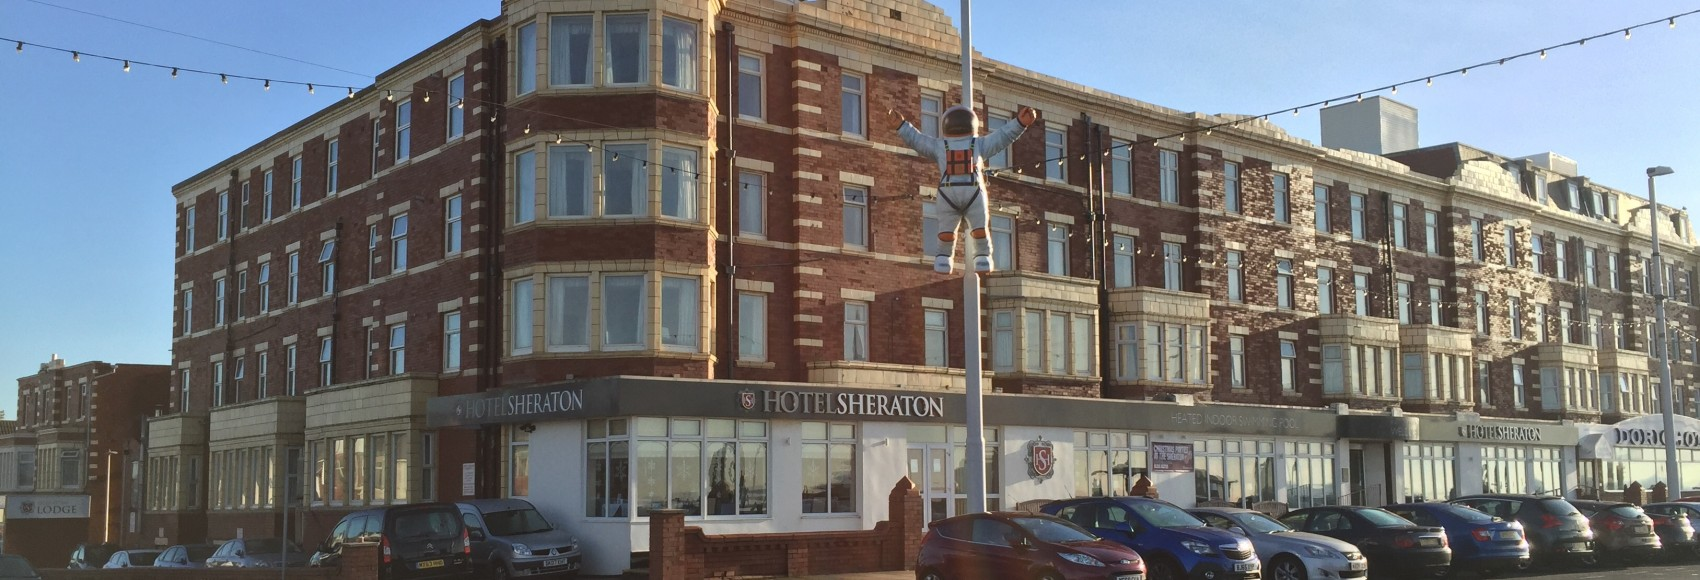 Hotel Sheraton, Blackpool for hire